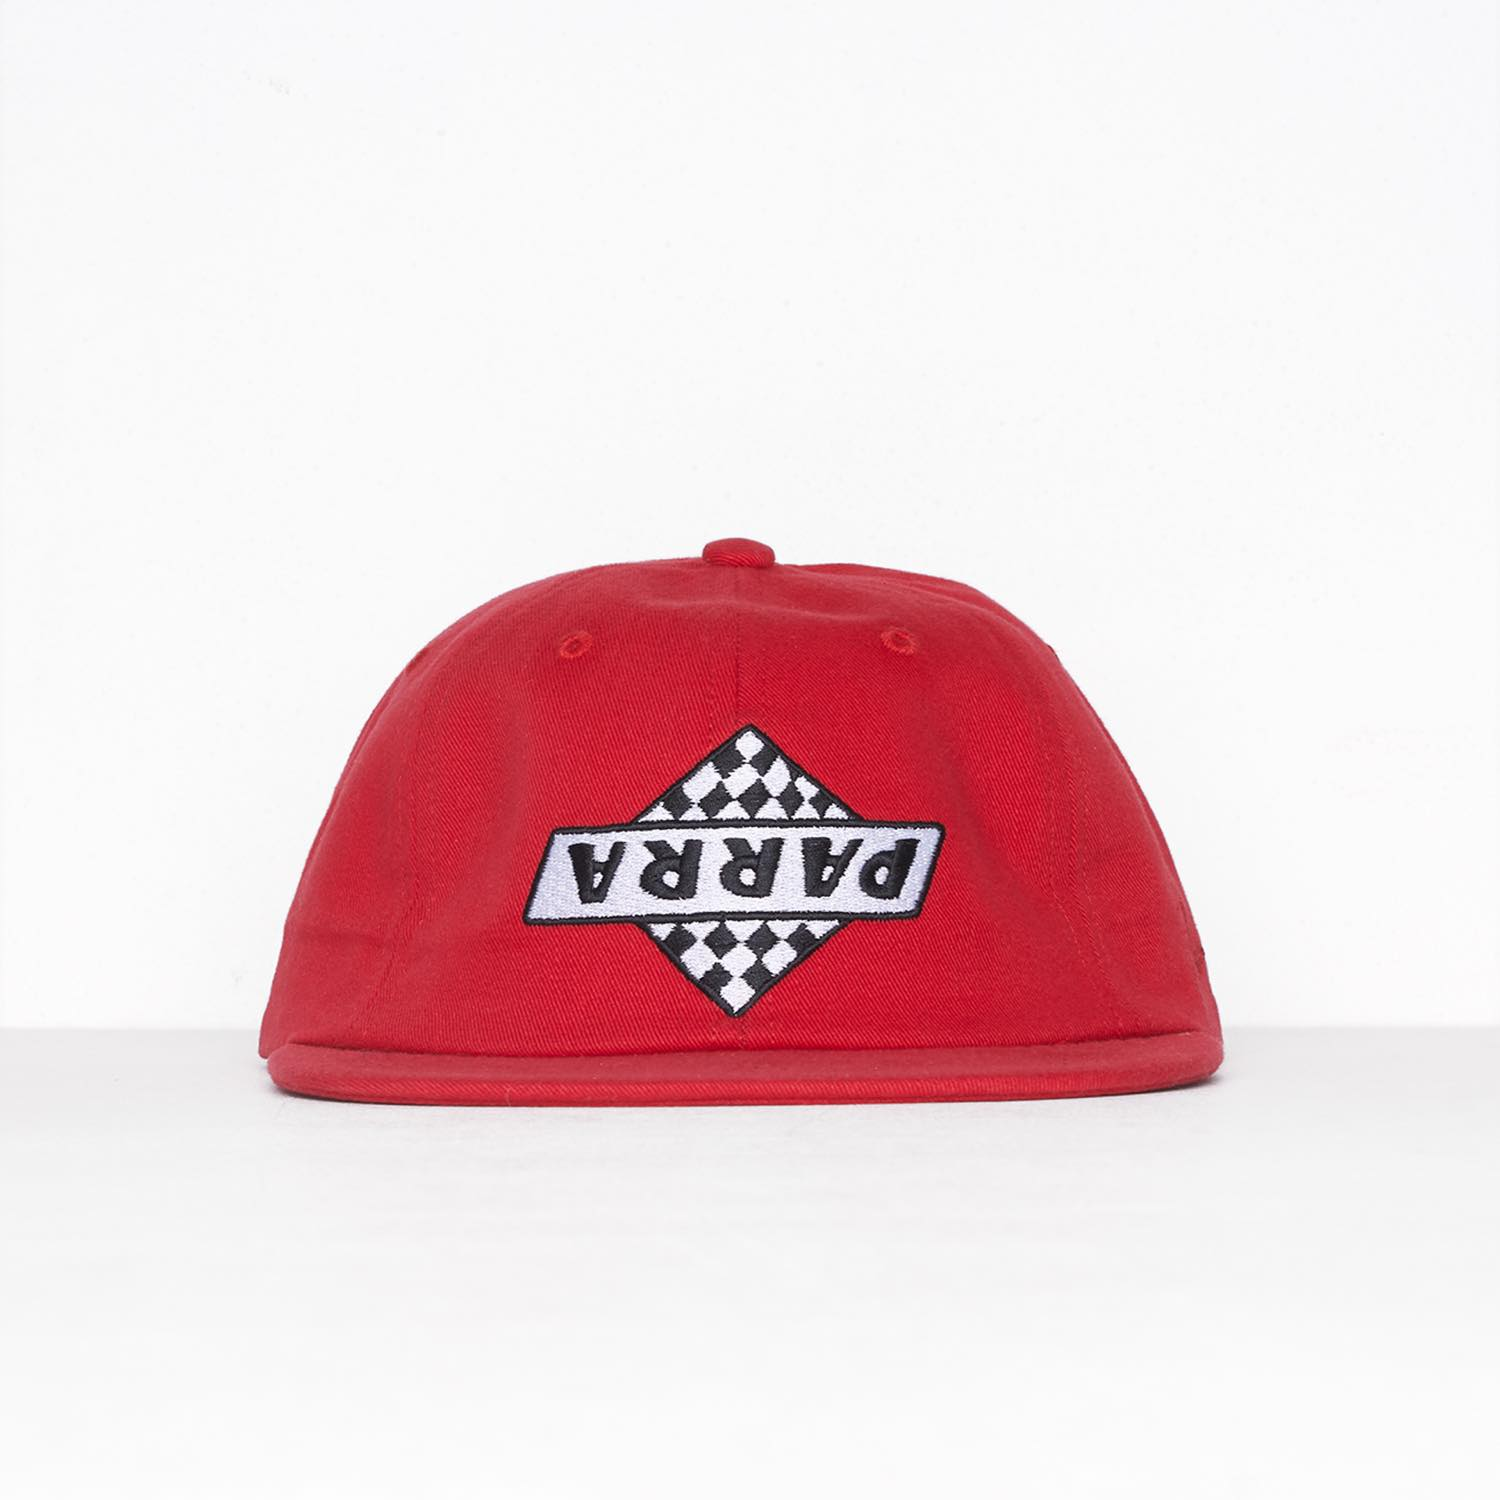 画像1: BY PARRA 6 PANEL HAT NOT RACING (1)